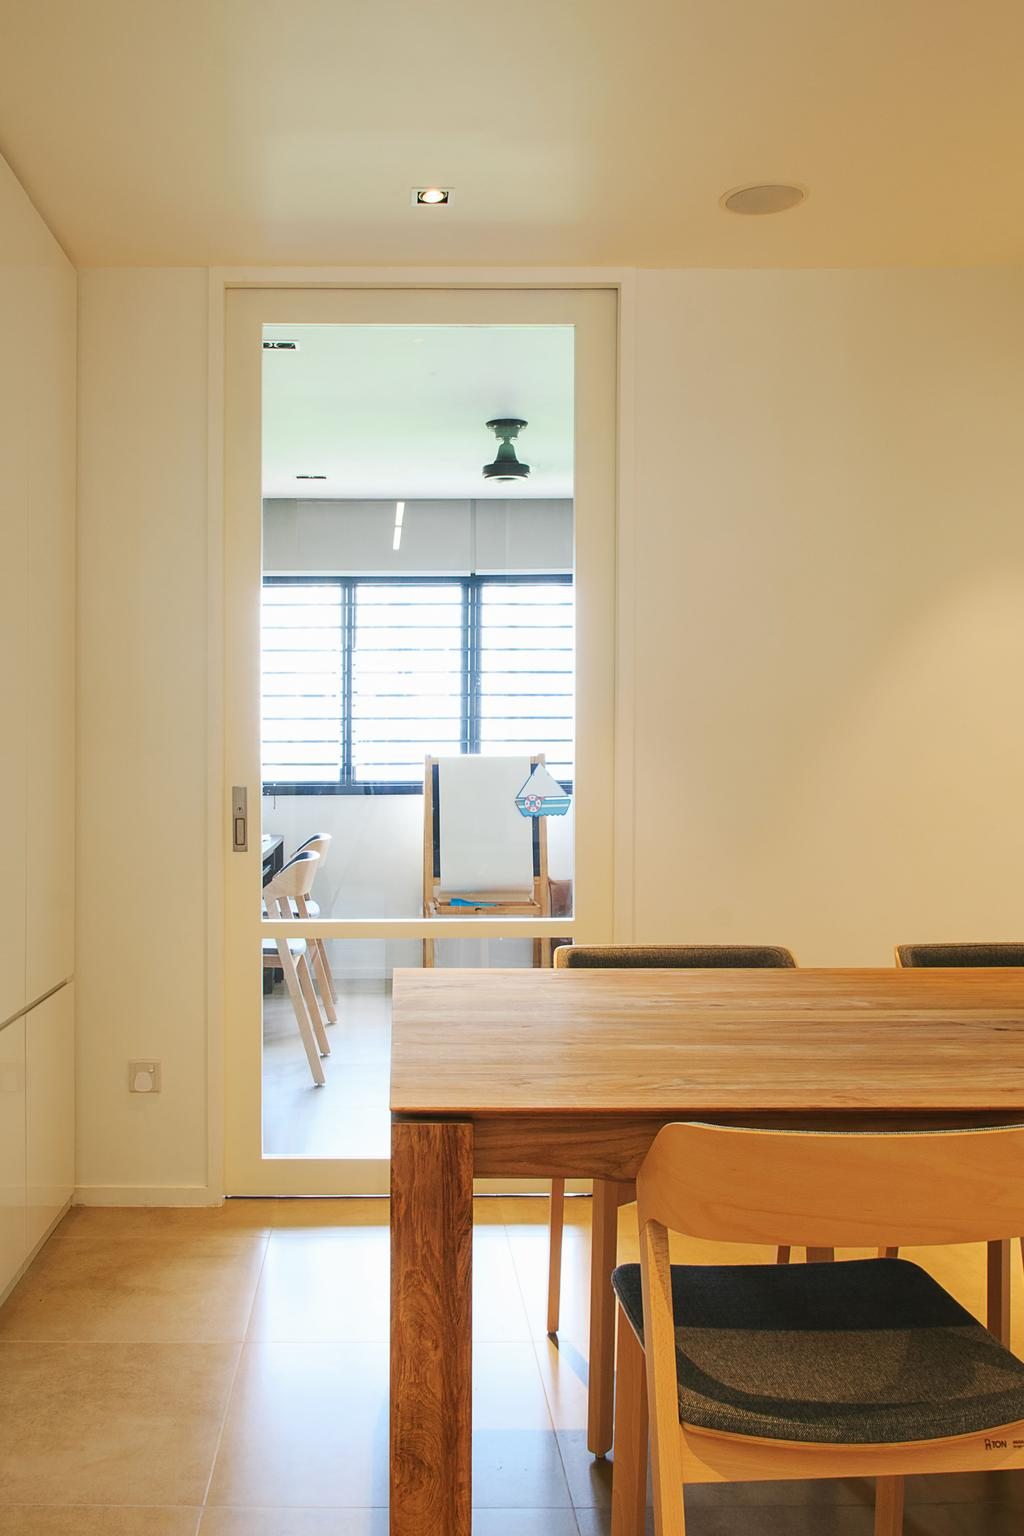 Contemporary, HDB, Dining Room, Bishan, Architect, JOW Architects, Dining Table, Dining Chair, Tiles, White Board, Furniture, Table, Banister, Handrail